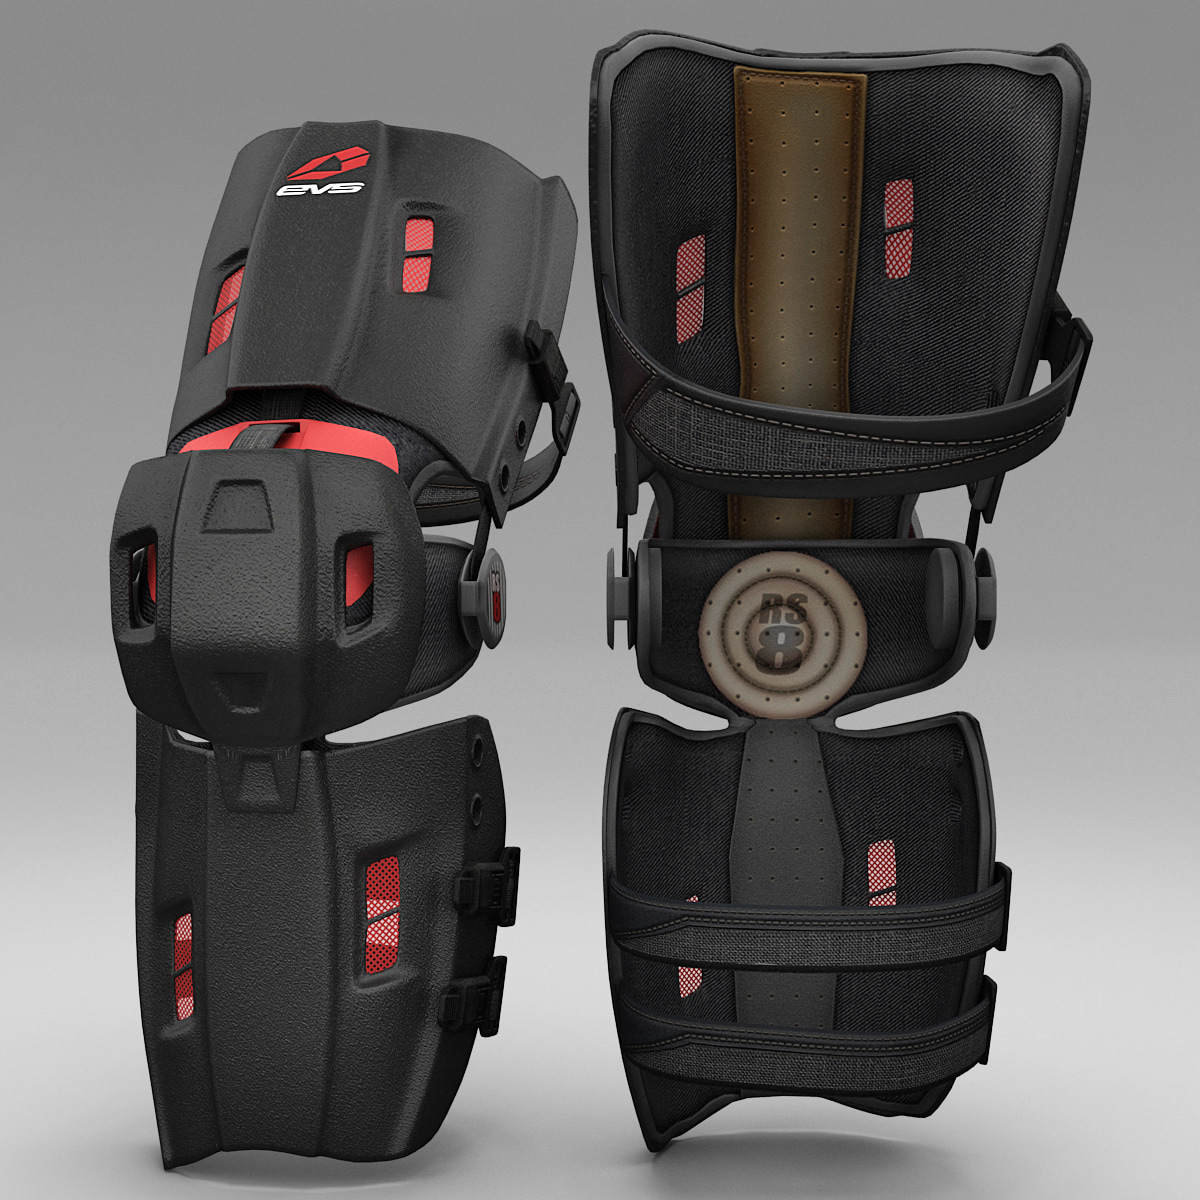 Motocross_Knee_Brace_EVS_RS8_0002.jpg